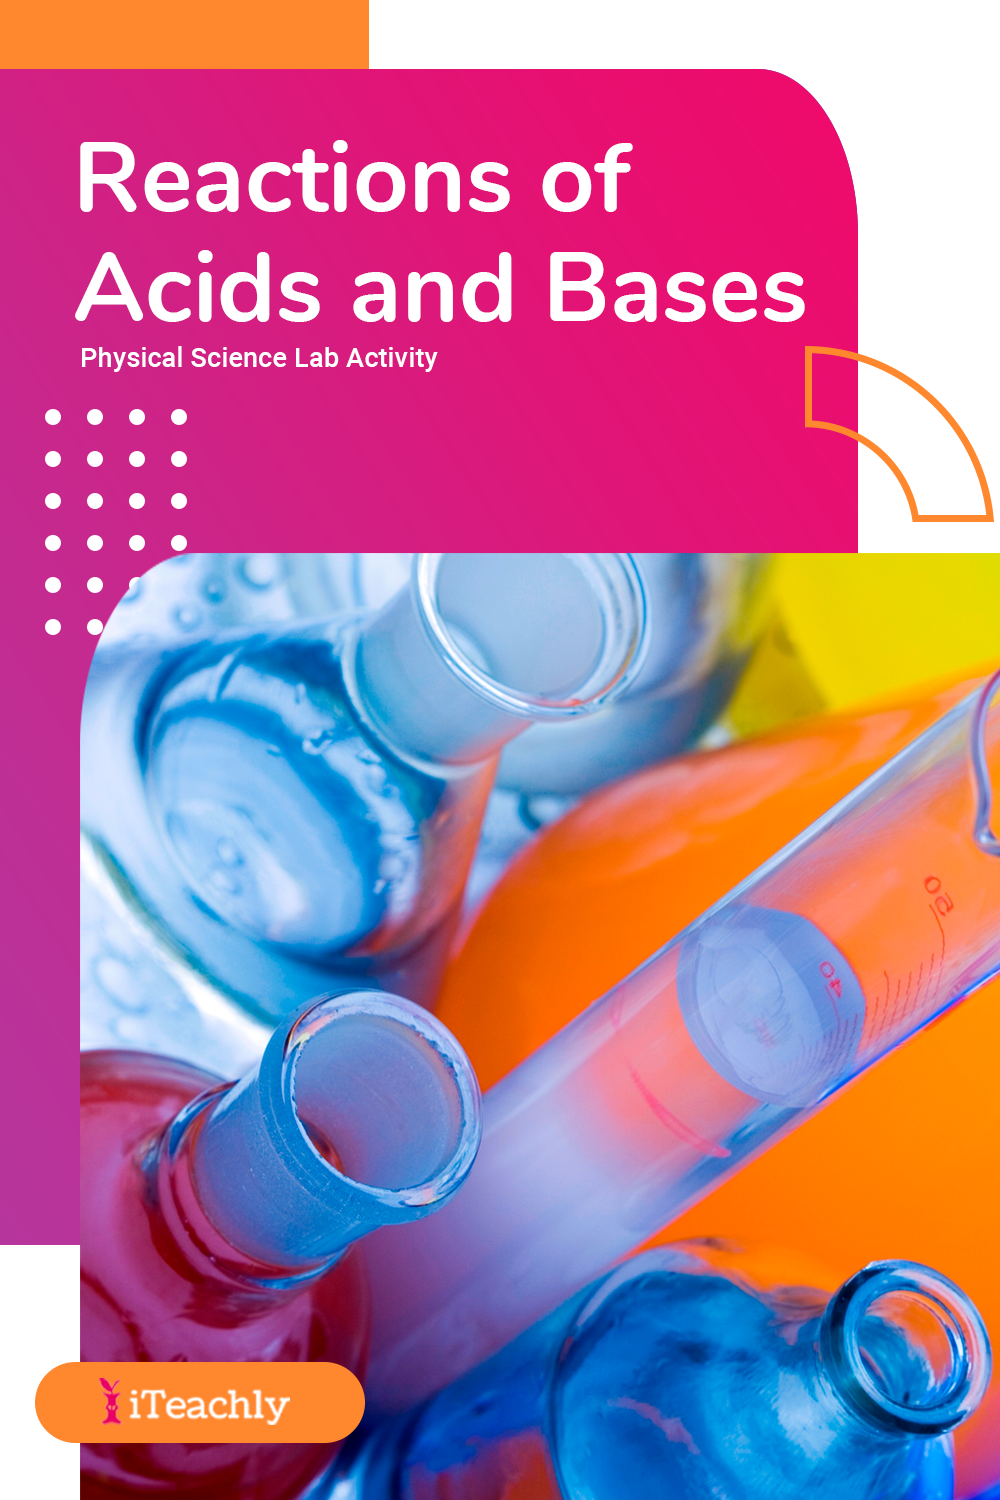 Reactions of Acids and Bases Physical Science Lab Activity